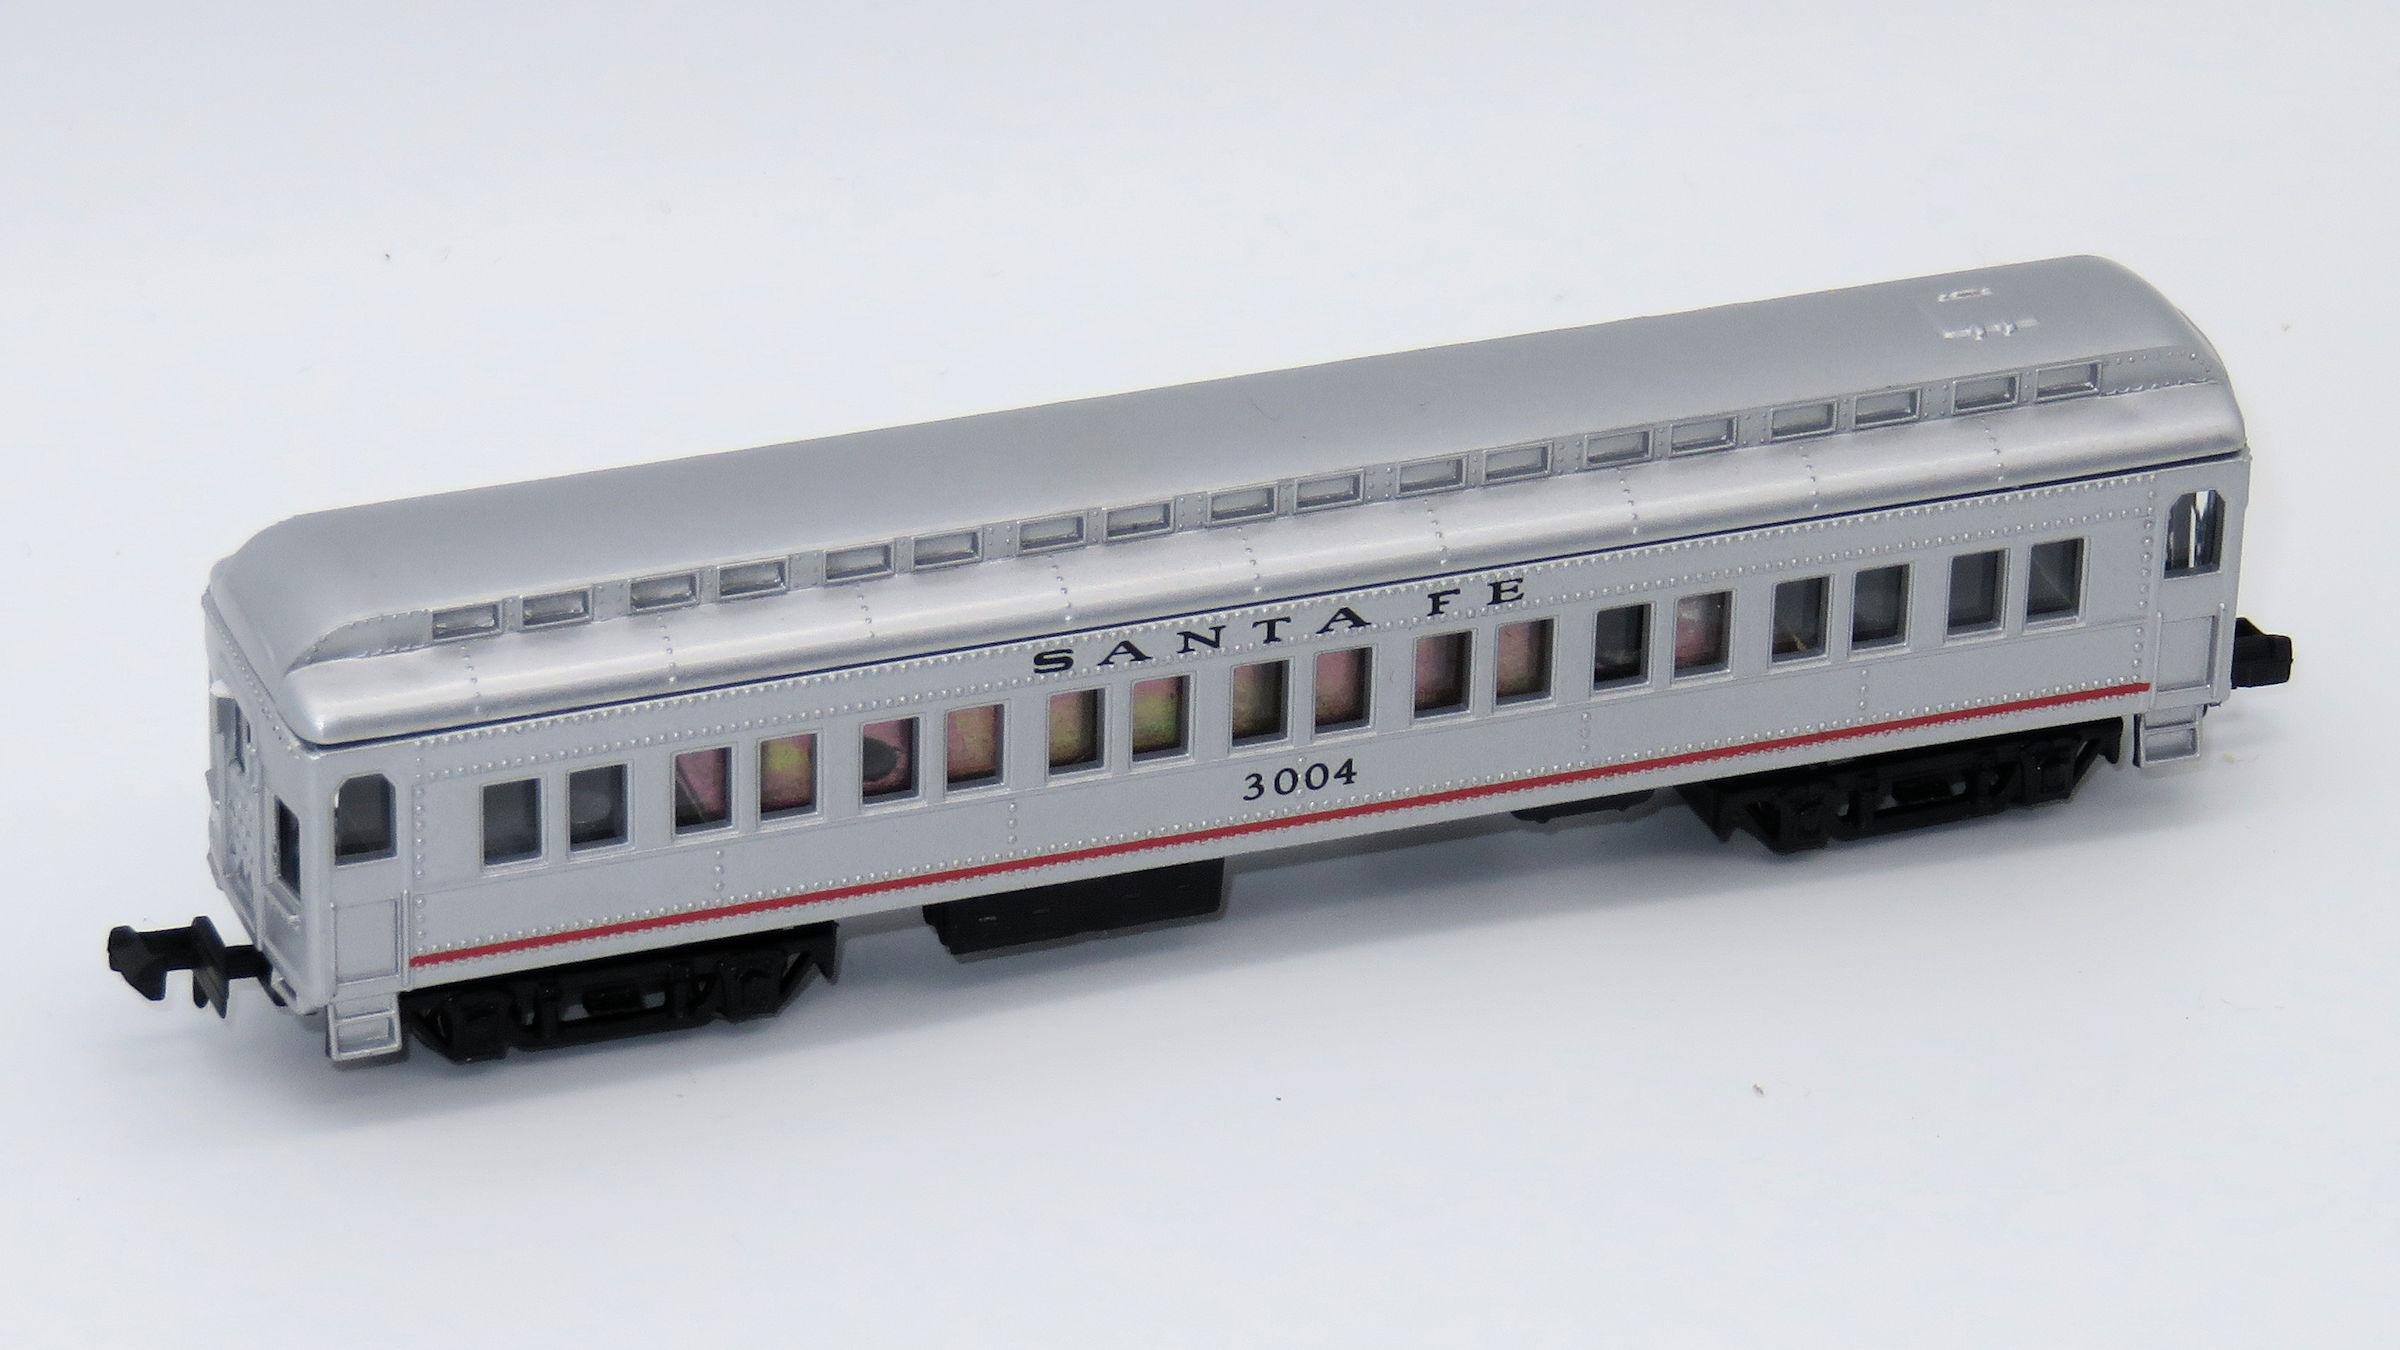 N Scale - Mehano - T772-C - Passenger Car, Heavyweight, ACF Coach - Santa Fe - 3004